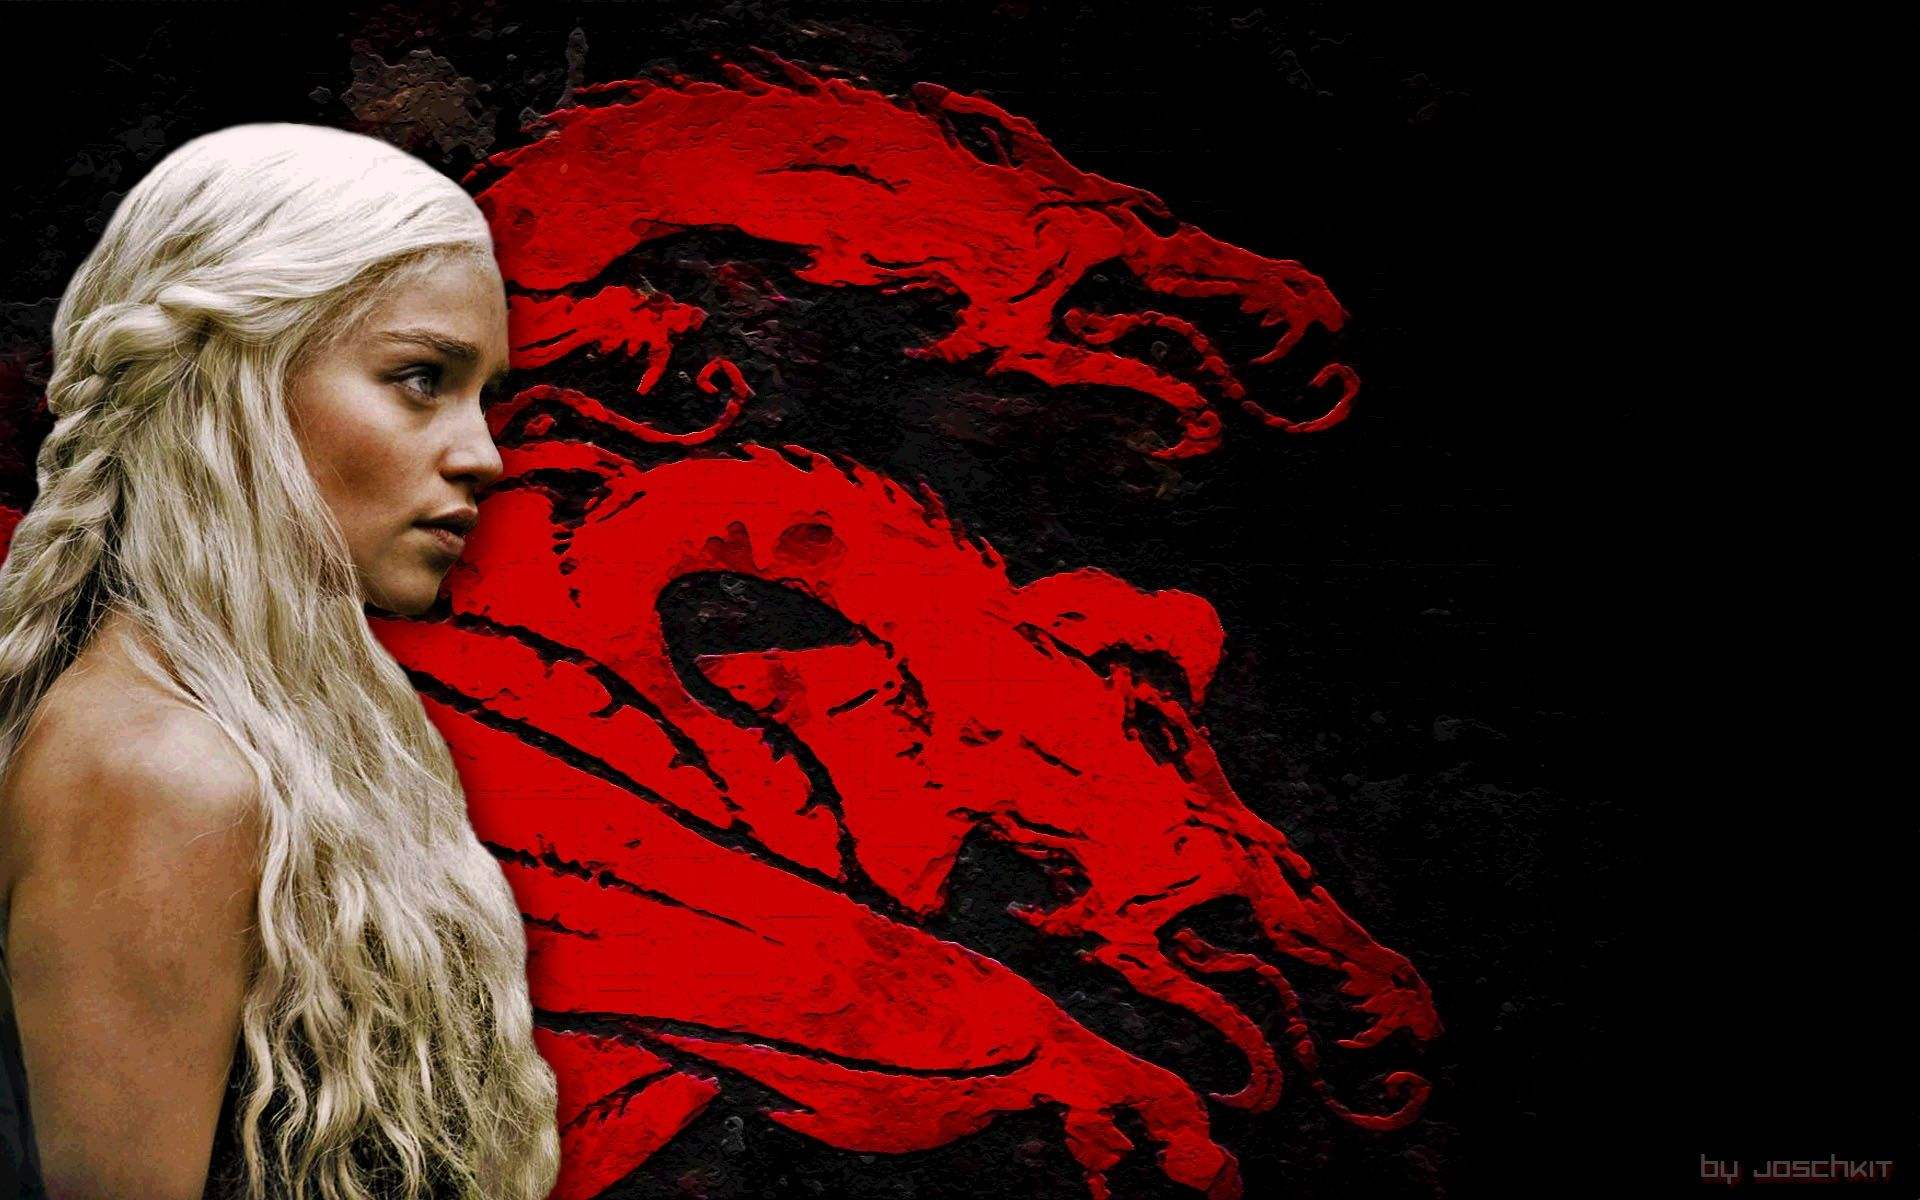 Game of Thrones Daenerys and red dragon